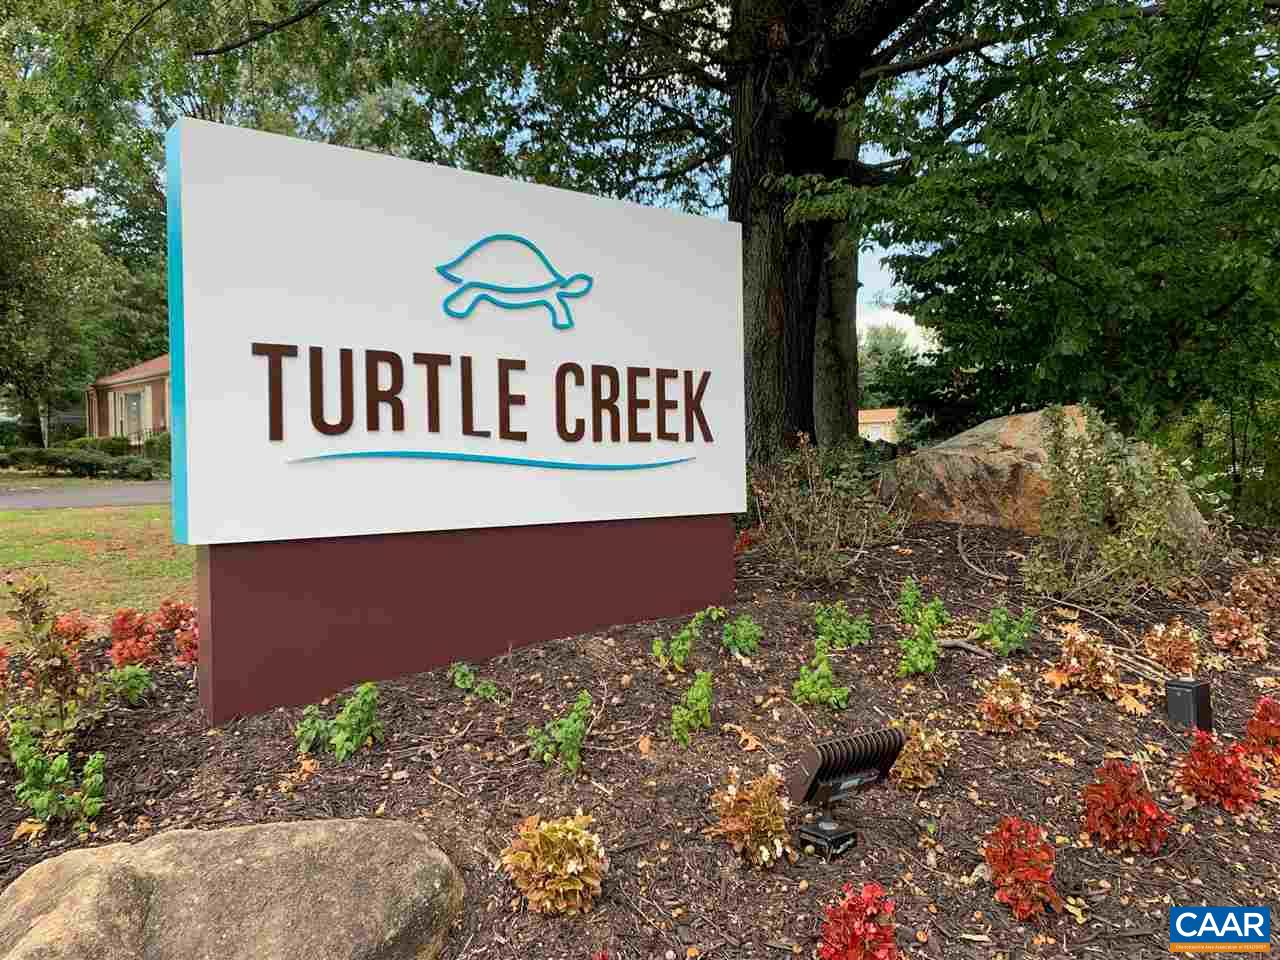 Rare Opportunity to Own in Turtle Creek at this price! 1 Bedroom, 1 full Bath & Laundry in the Condo! Brick Exterior & Wood Burning Fireplace. Quality Construction; Exterior storage unit on private balcony. HOA includes: 2 Pools, 2 Tennis Courts, Fitness Center, Club House, Walking Paths & Close to Stonefield Shopping Center & Albemarle High School.